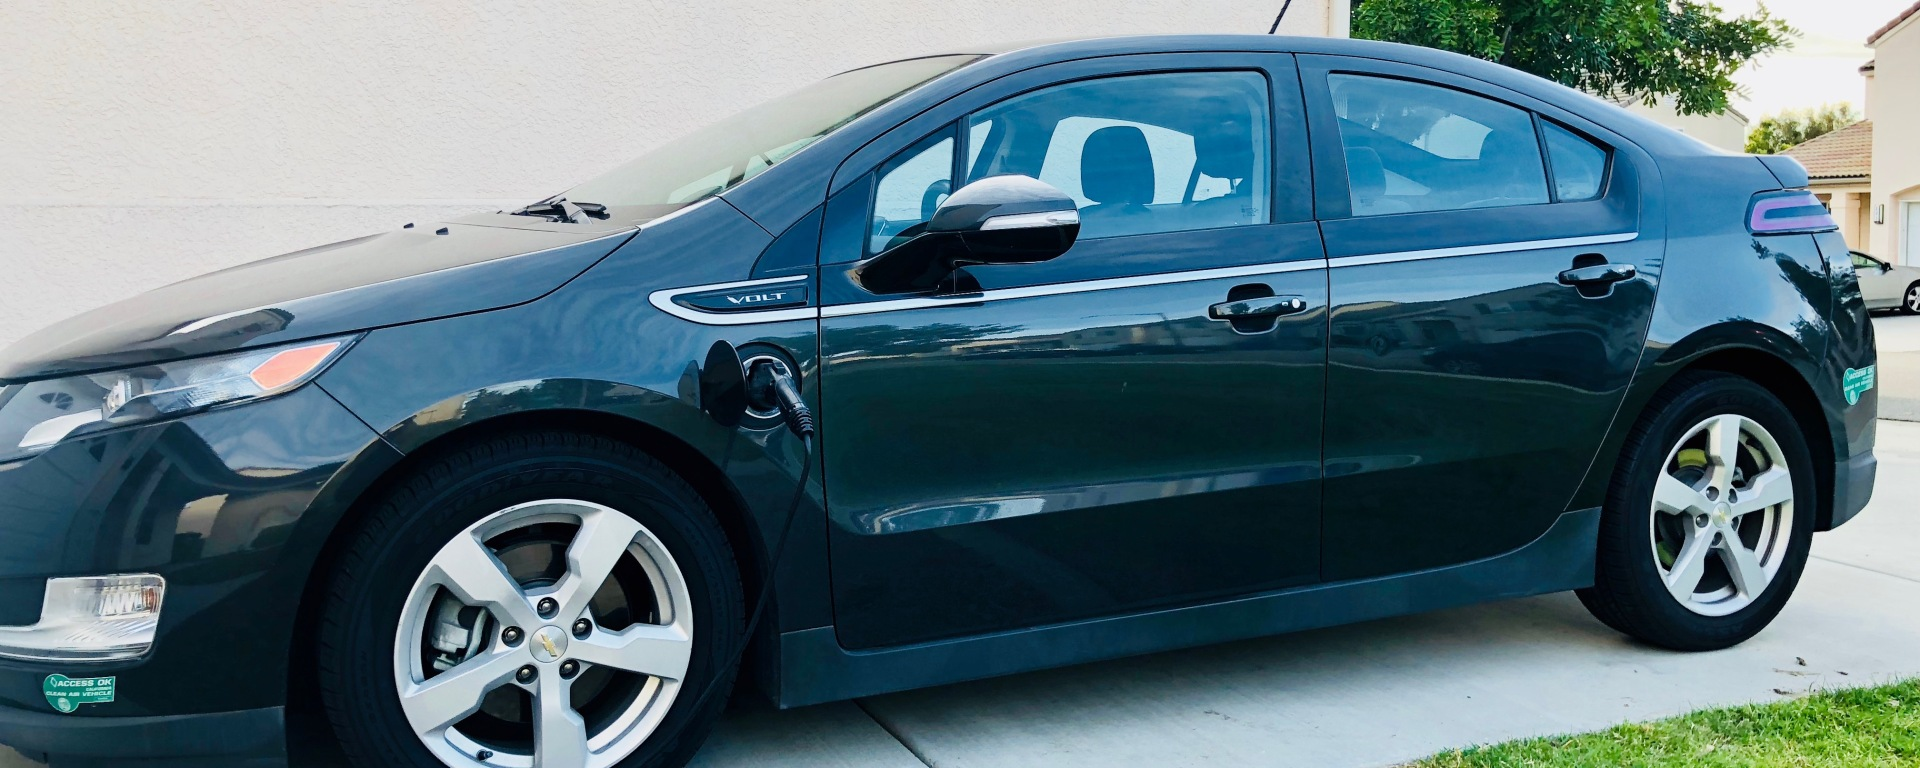 Did I Even Save Any Gas Money By Buying A Chevrolet Volt The Fact Chevy